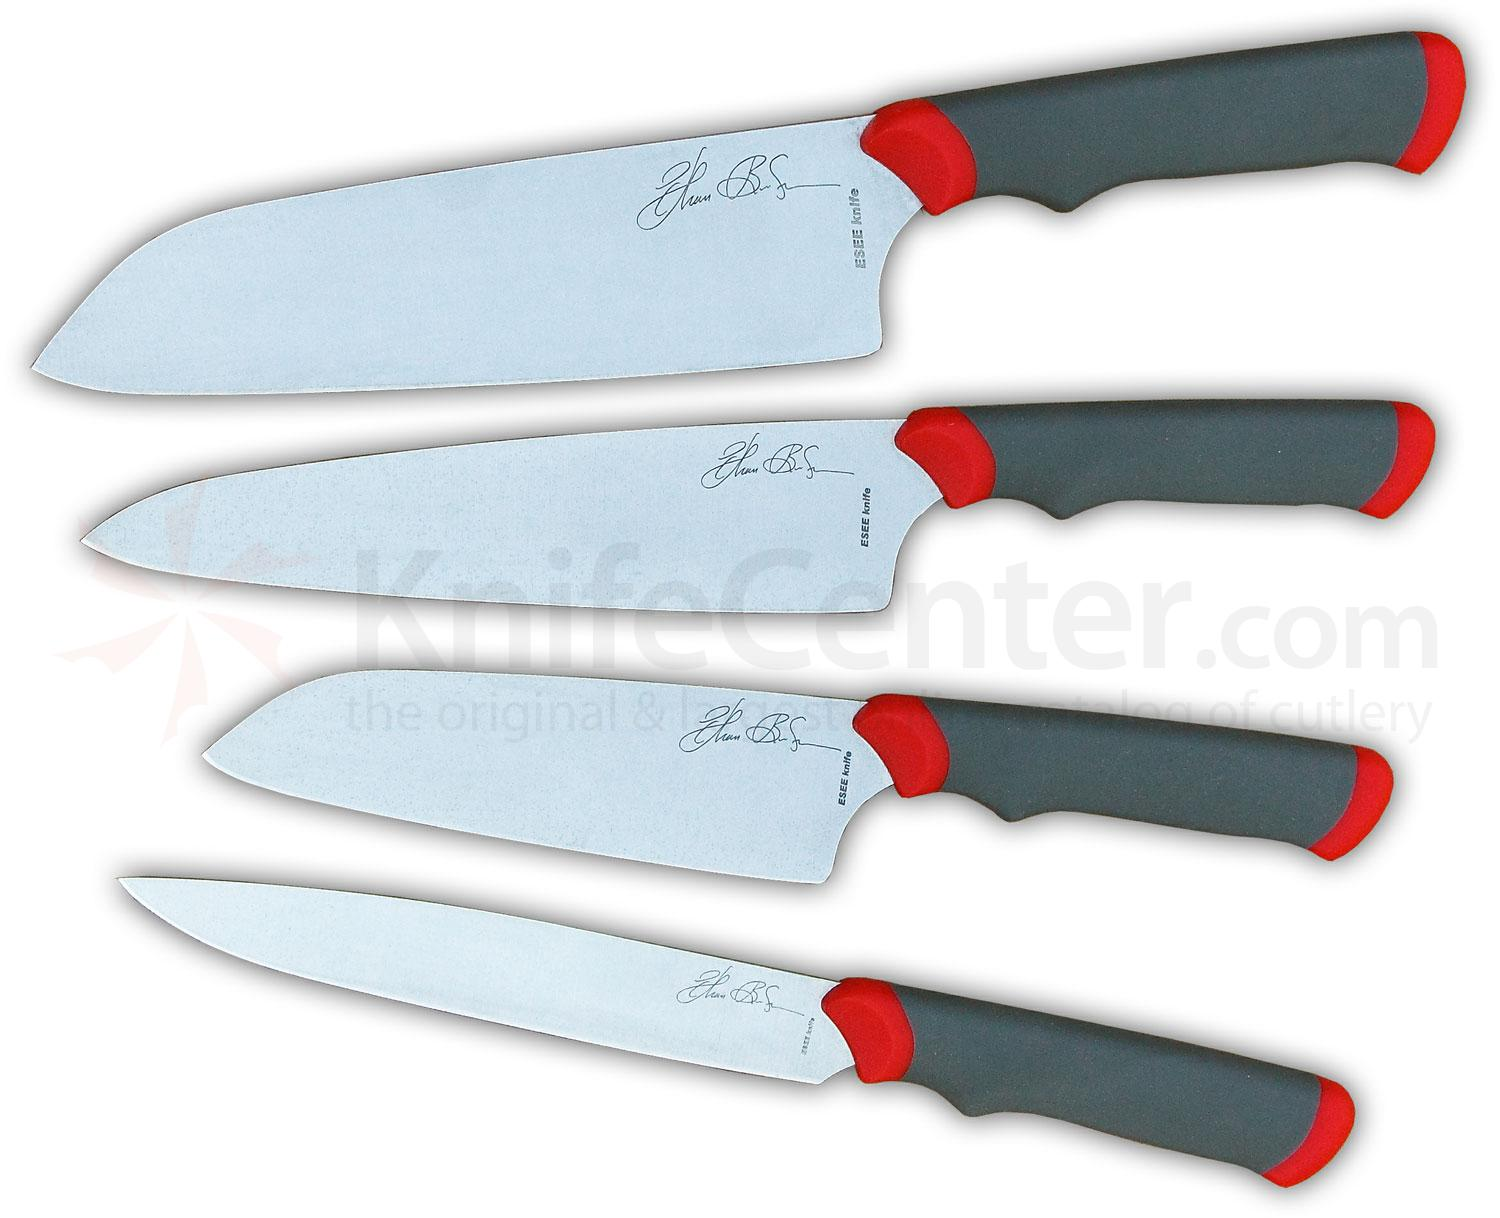 Fine Cutlery Brands Esee Ethan Becker Signature Cooking Knives Series 1 Set